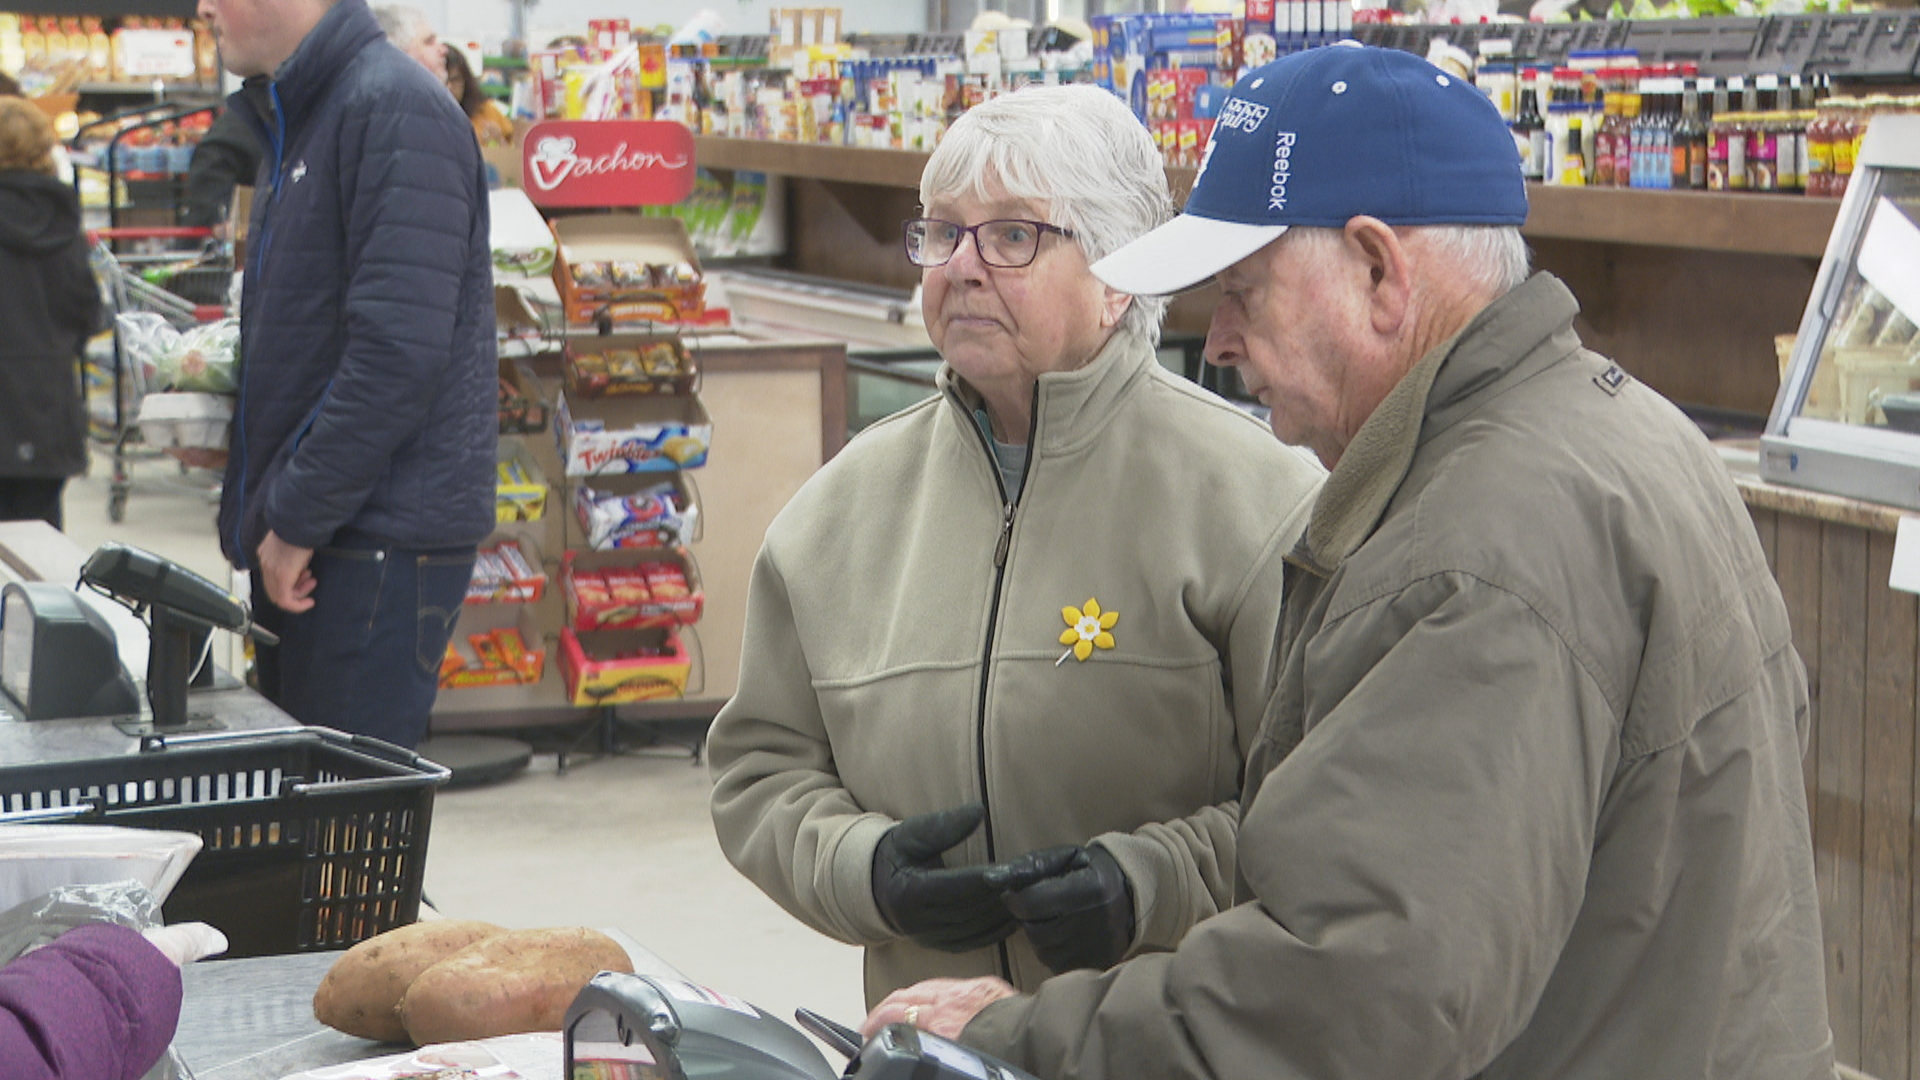 SaveTheBoomers: Saint John grocer offers isolated shopping amid ...